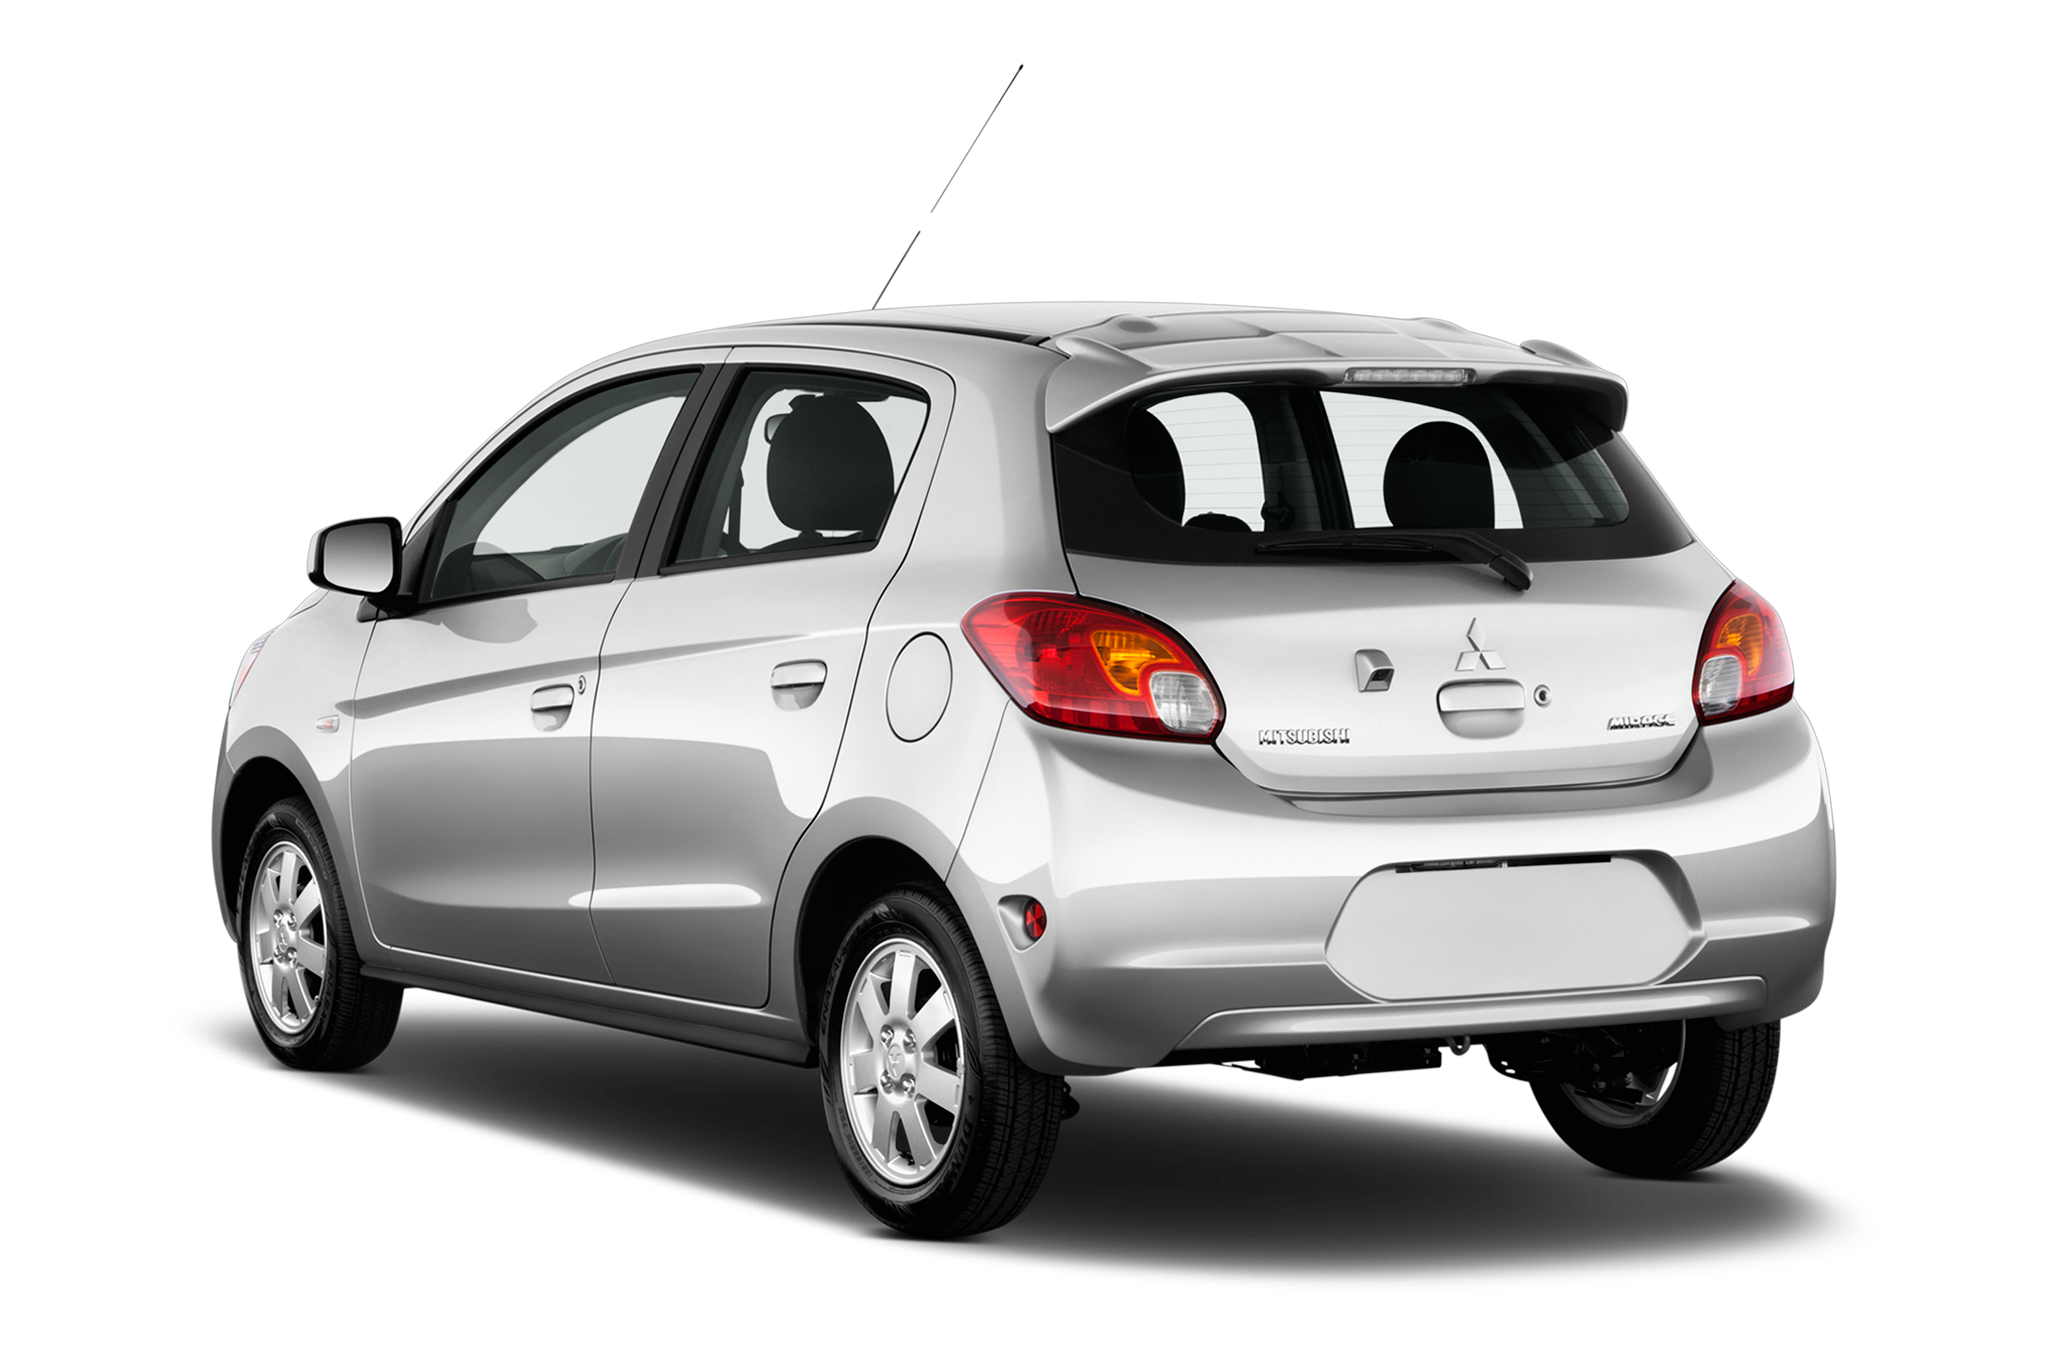 Mitsubishi Mirage G4 Sedan Refreshed Lineup Confirmed For